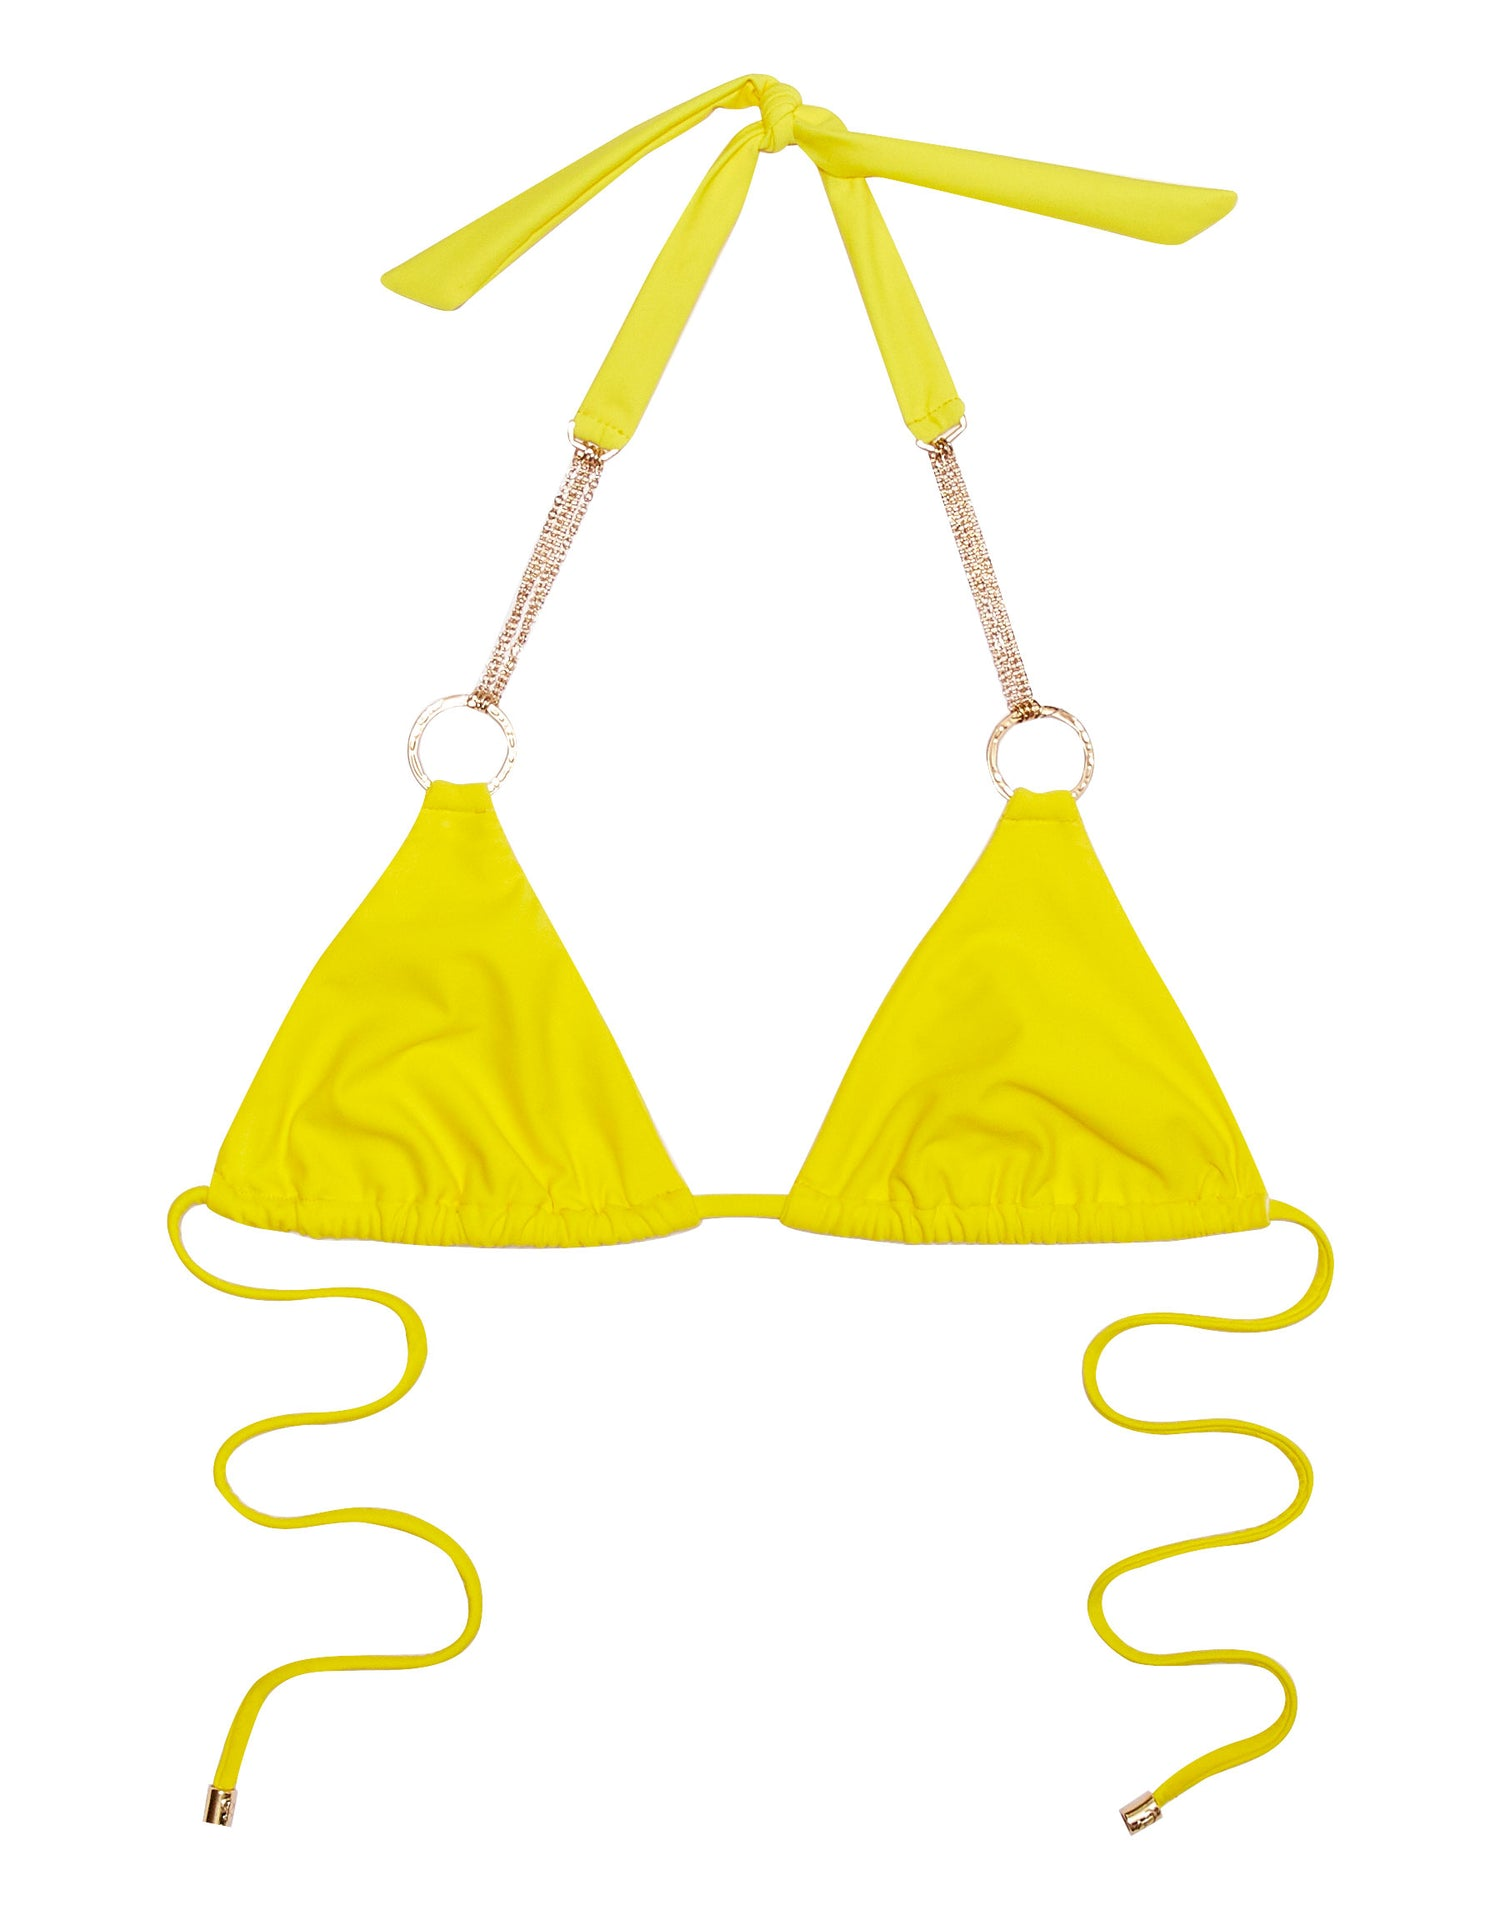 Zara Hardware Yellow Triangle Bikini Top - product view